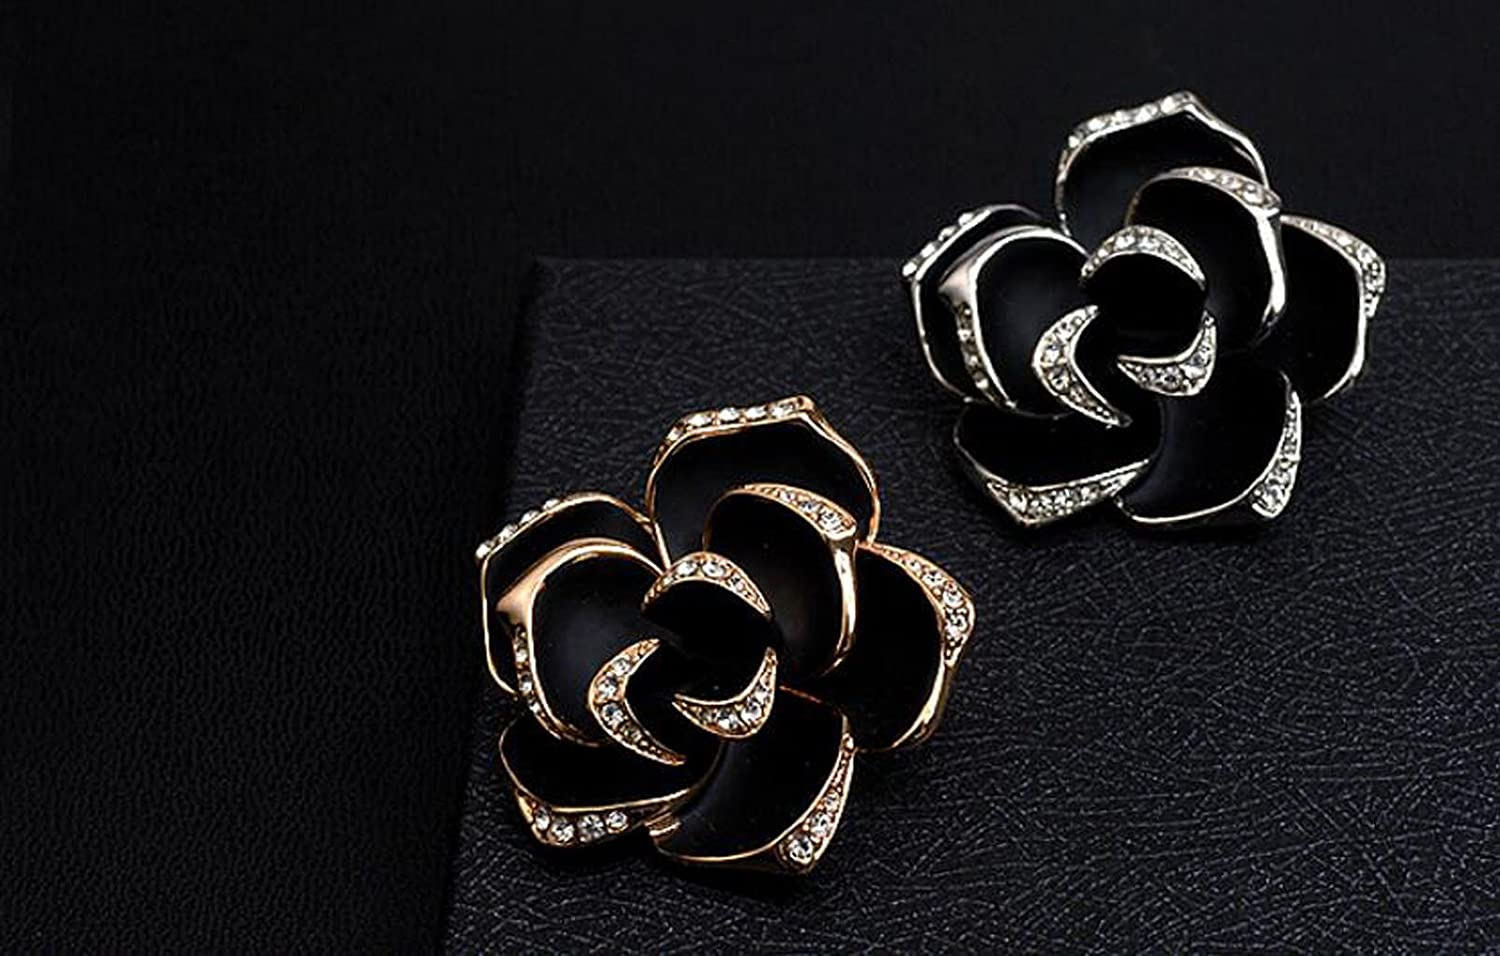 Color : White JBHURF Mens Fashion Brooch Set Ladies Needle Collar Rose Brooch Austrian Crystal 18K Rose Gold Gilded red Rose Brooch Gift